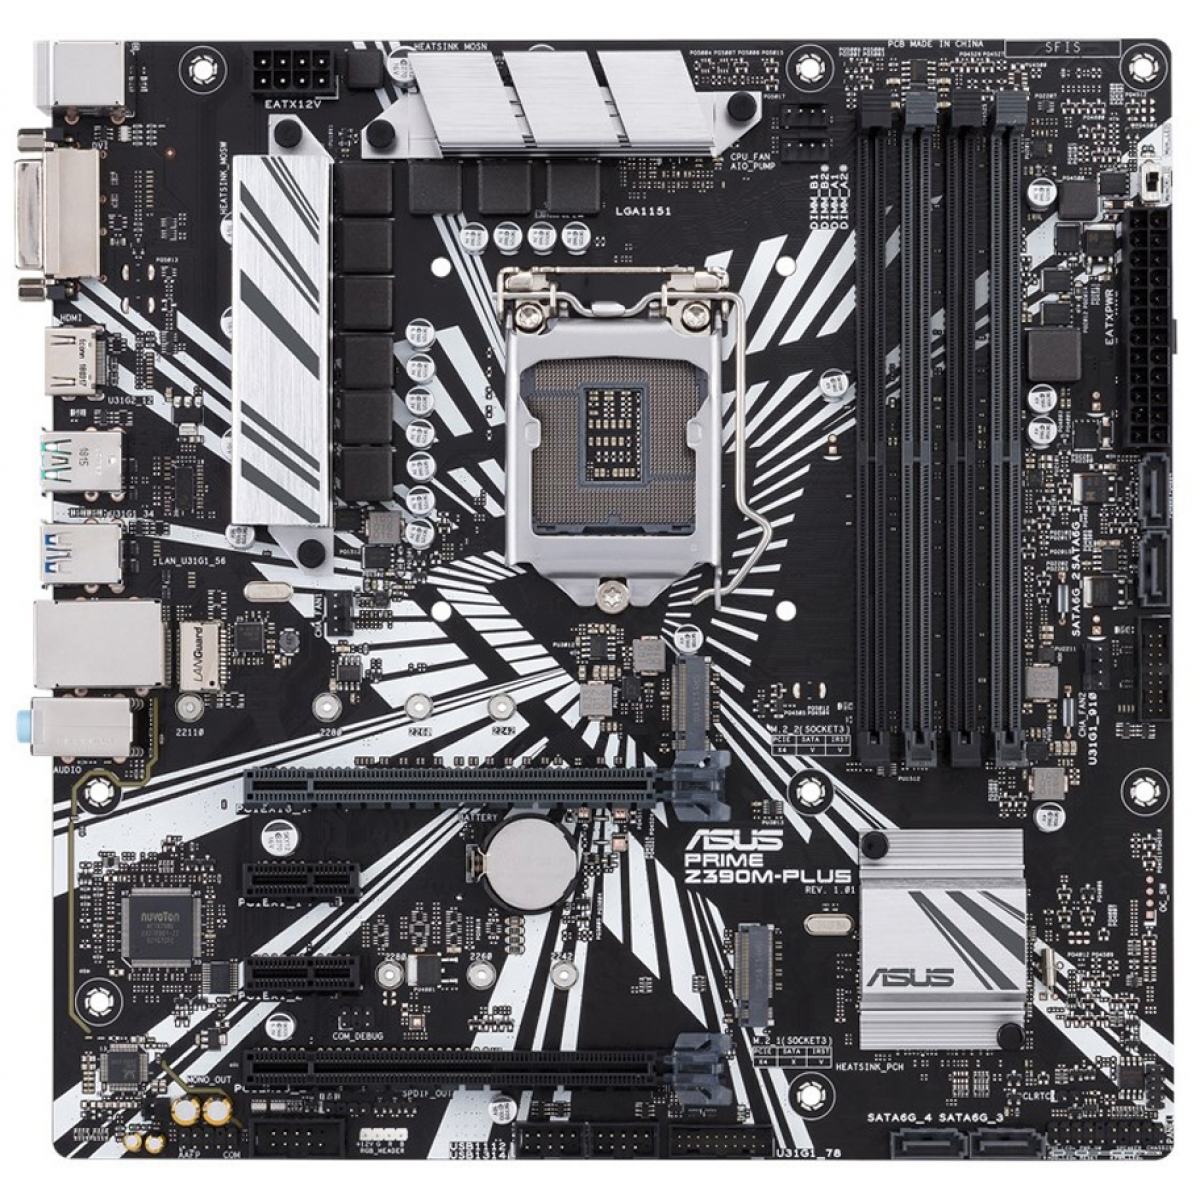 Placa Mãe Asus Prime Z390M-Plus, Chipset Z390, Intel LGA 1151, mATX, DDR4